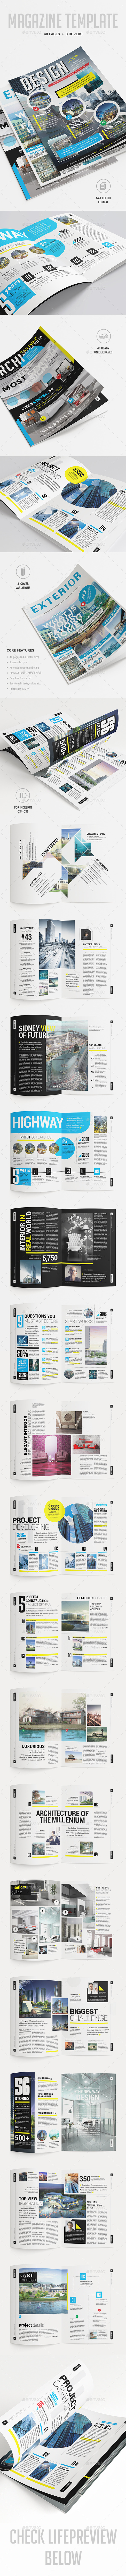 Magazine Template (A4&Letter) - Magazines Print Templates